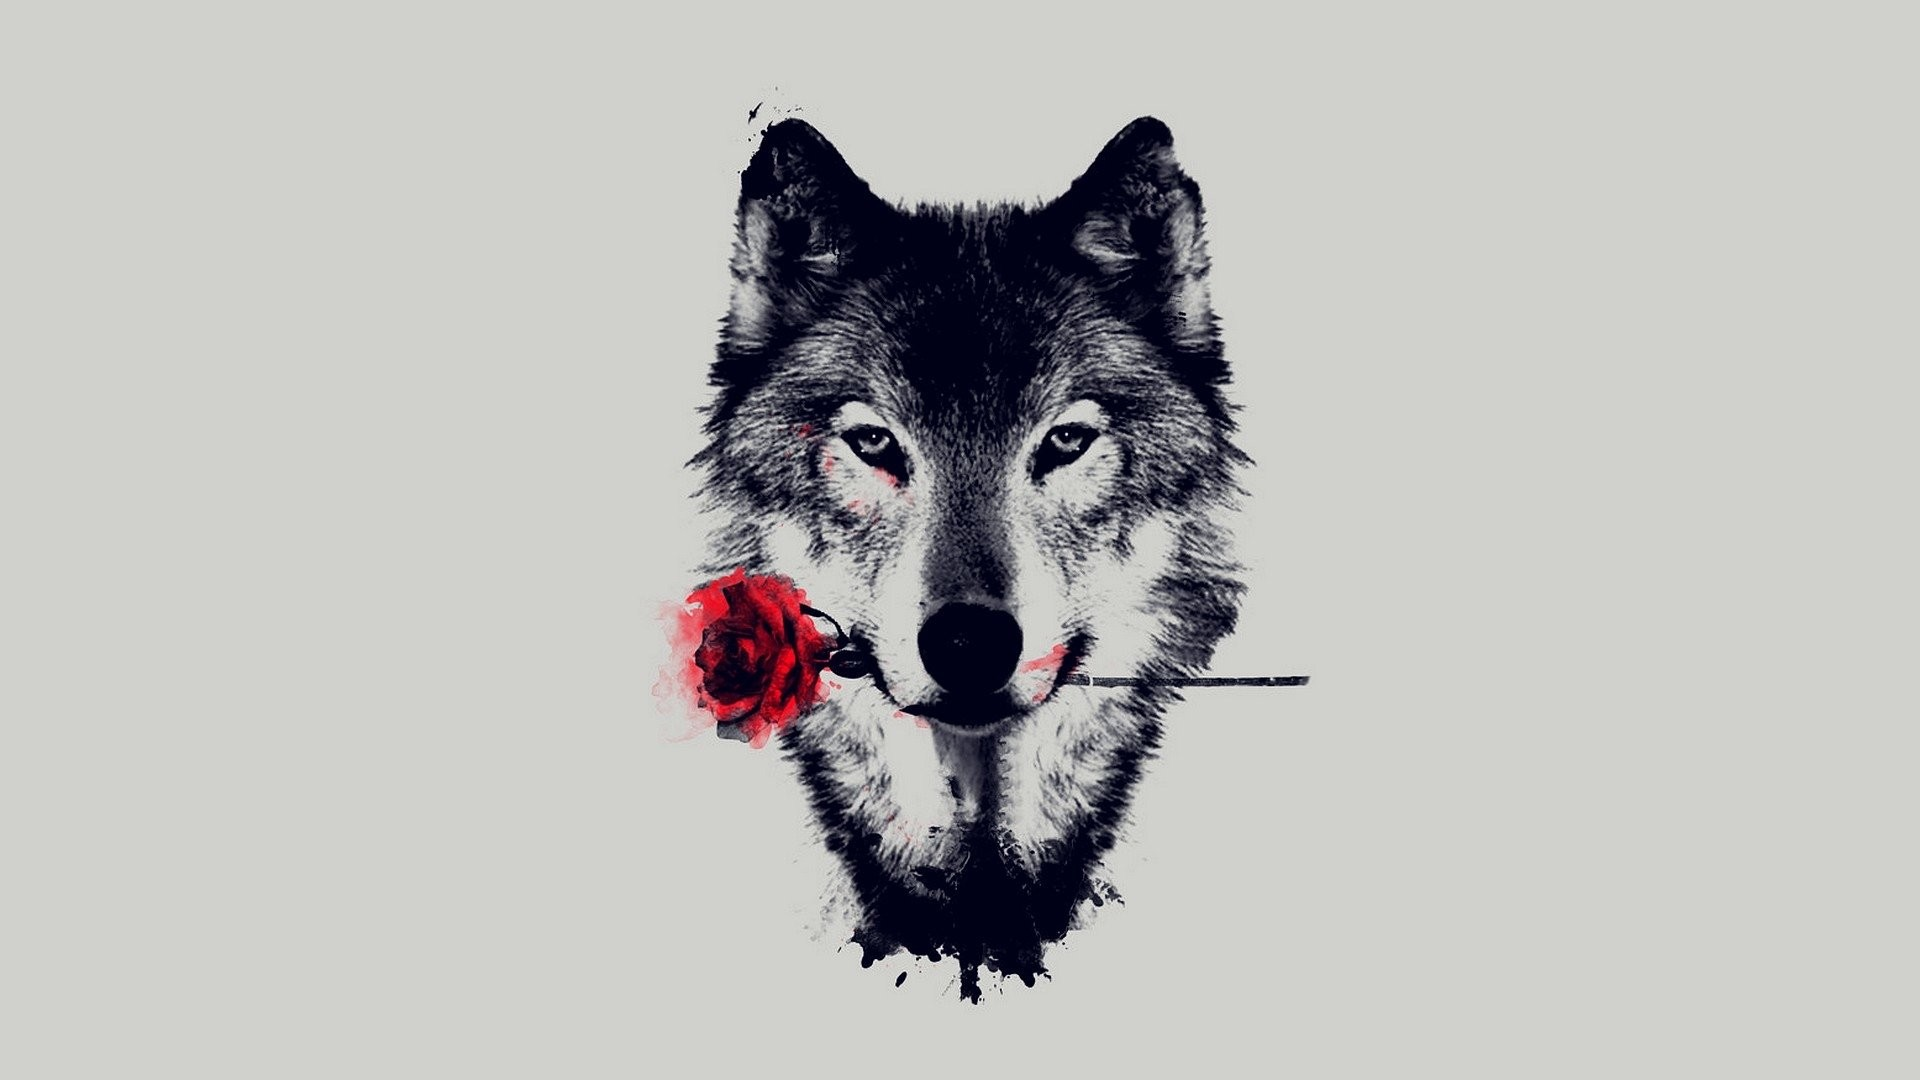 1920x1080 Animal - Wolf Artistic Red Rose Wallpaper